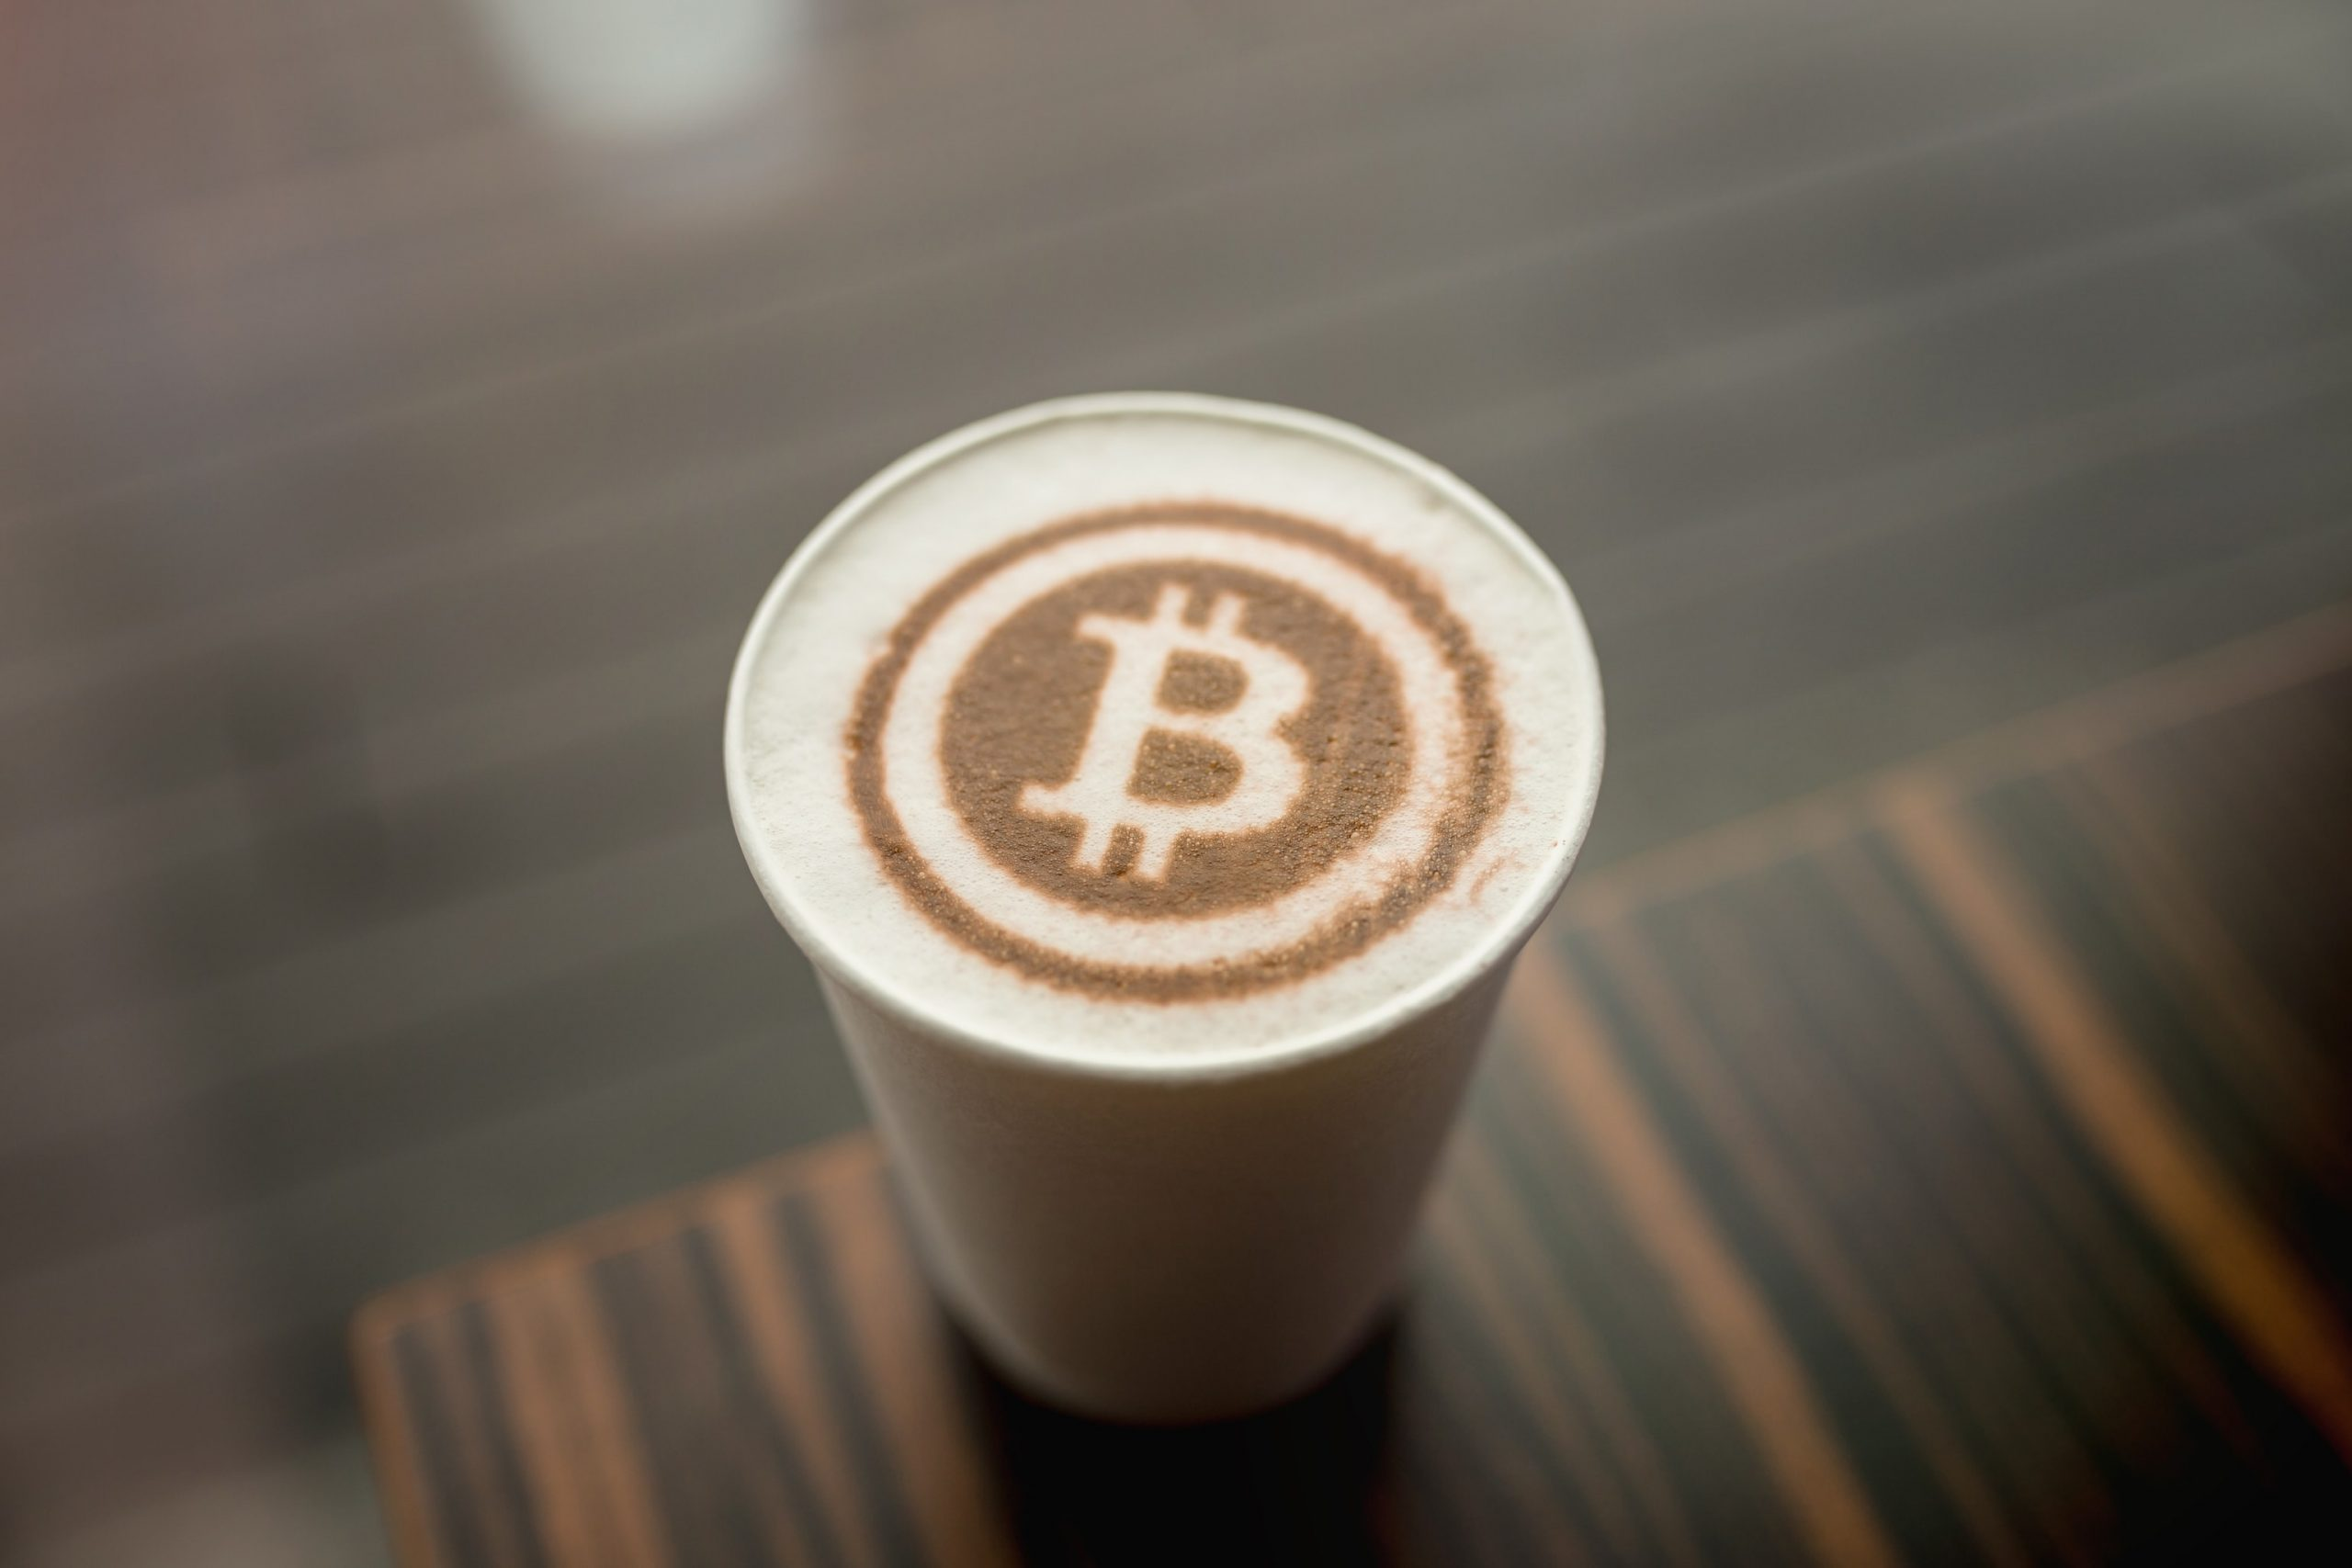 Bitcoin-Logo als Latte Art